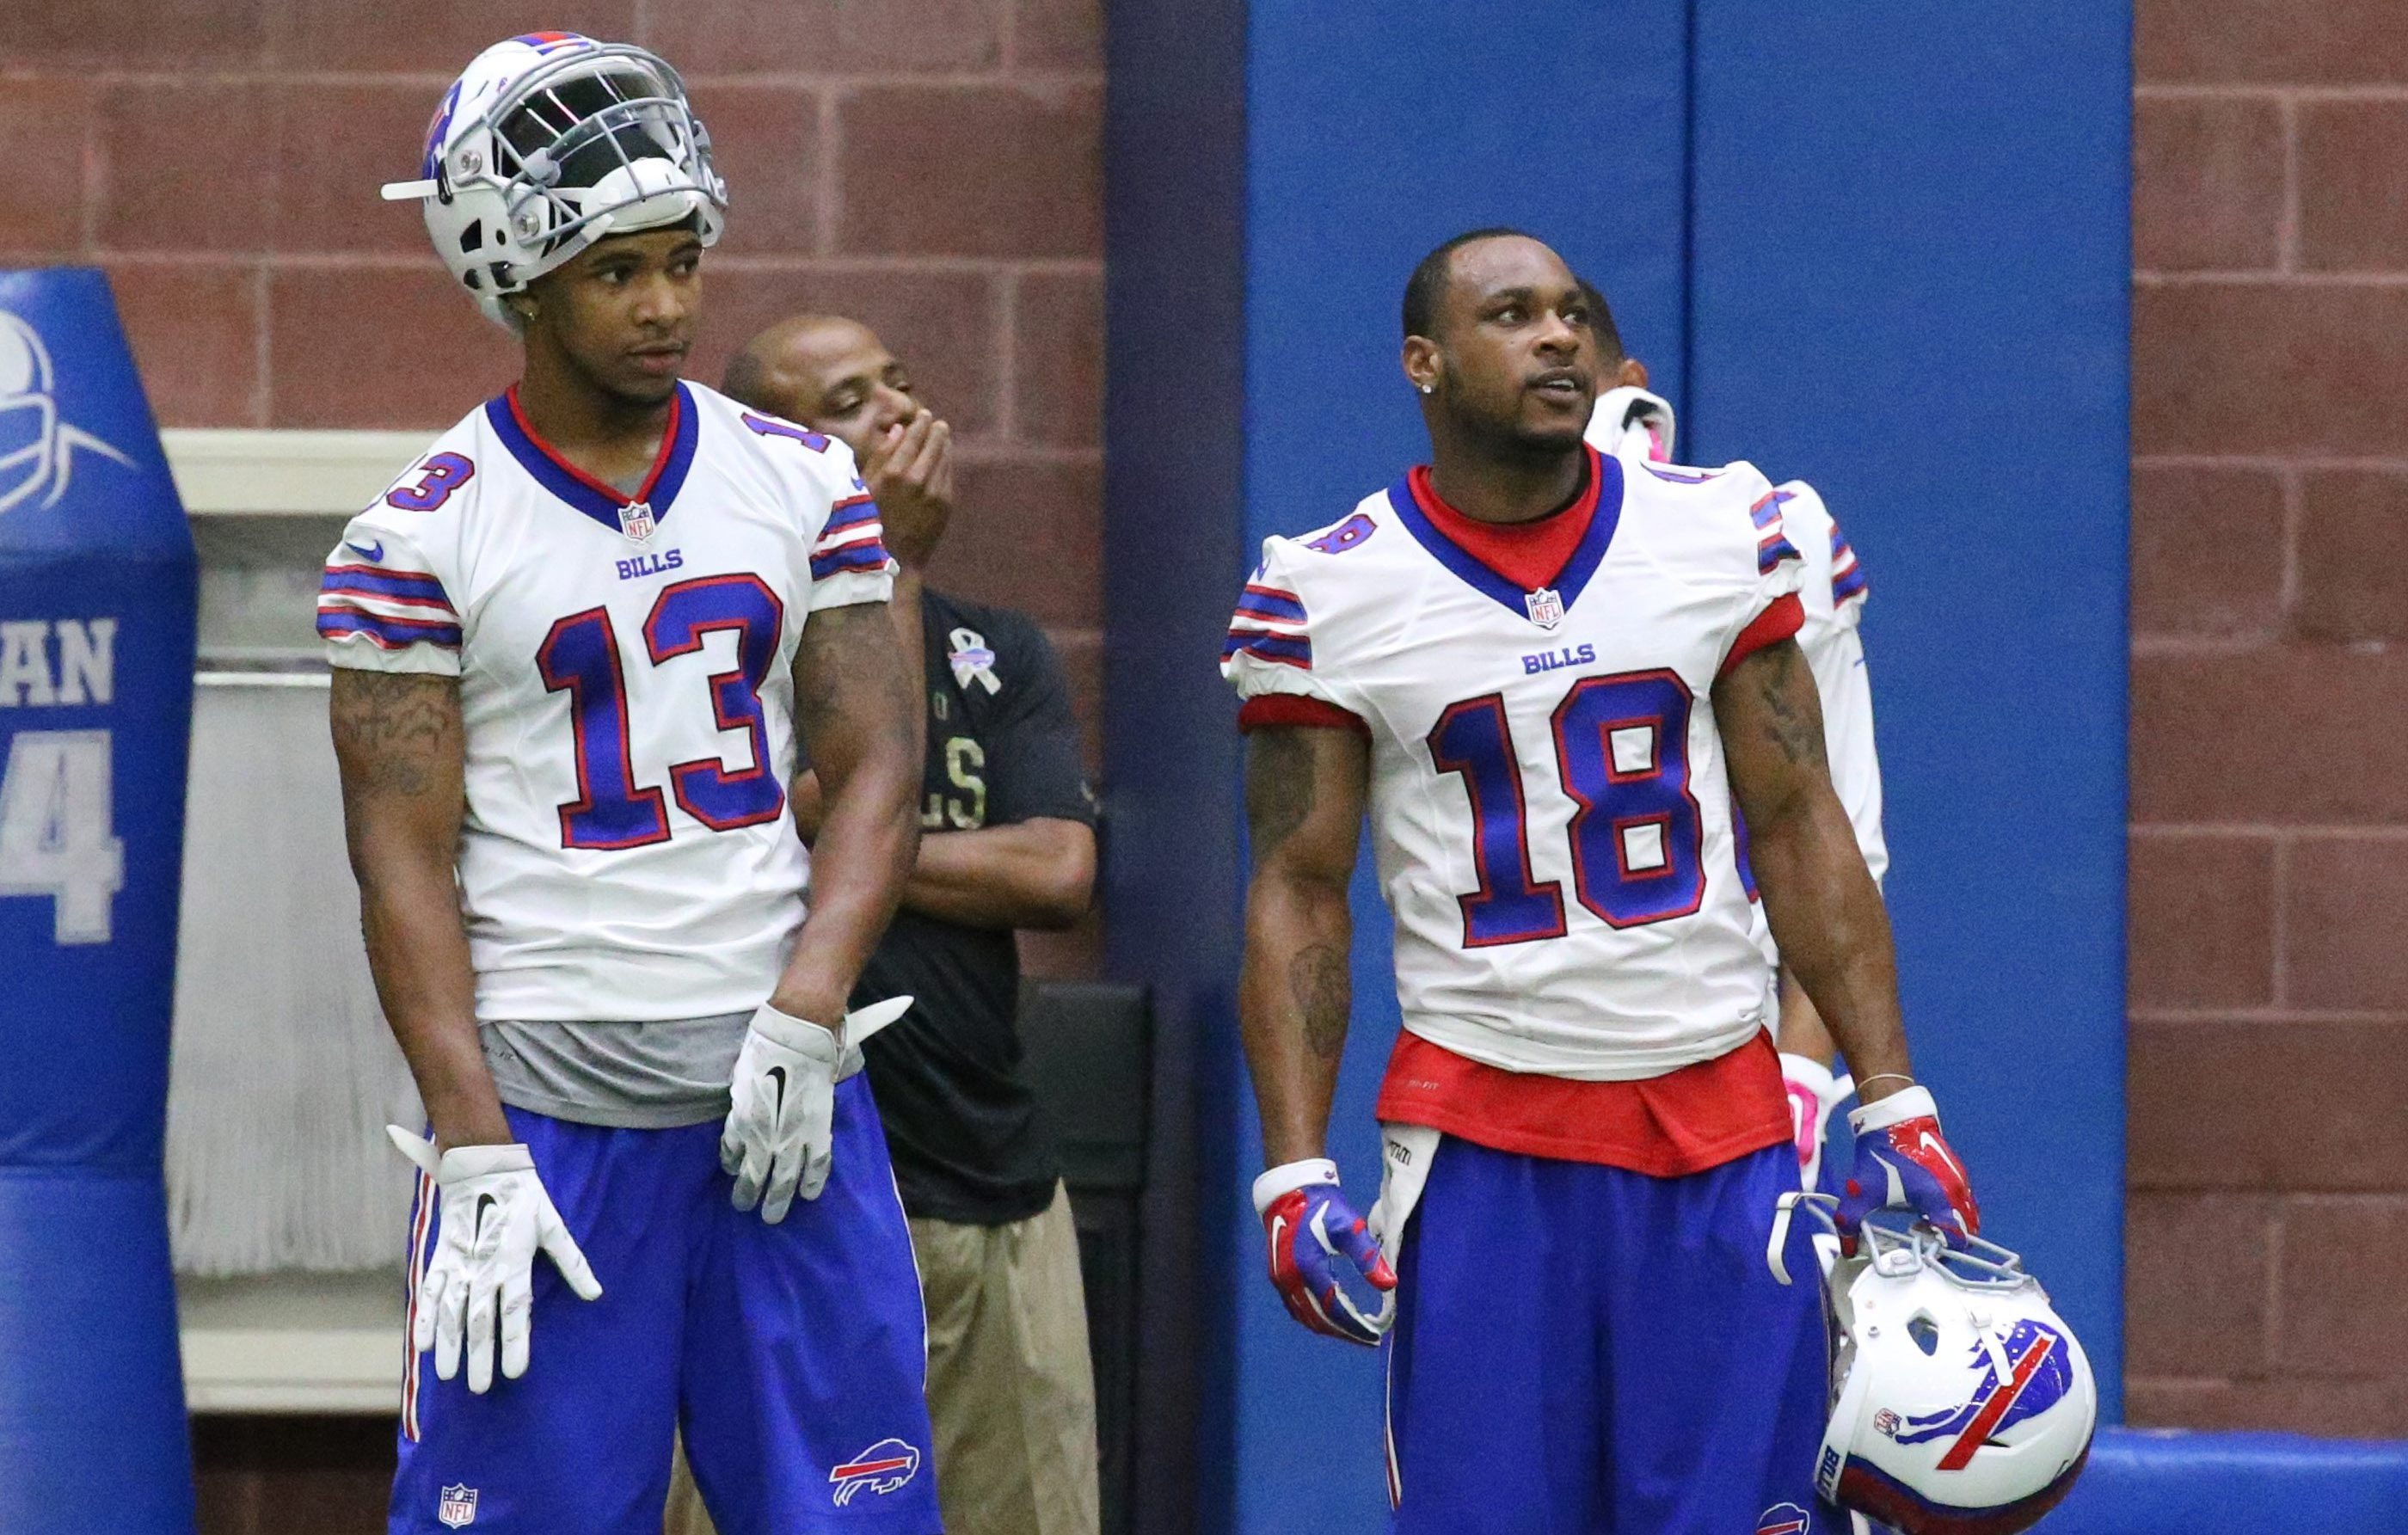 Dezmin Lewis (13) and Percy Harvin (18) are two of the players who are on the Bills roster entering training camp who weren't on the roster at the end of the 2014 season.